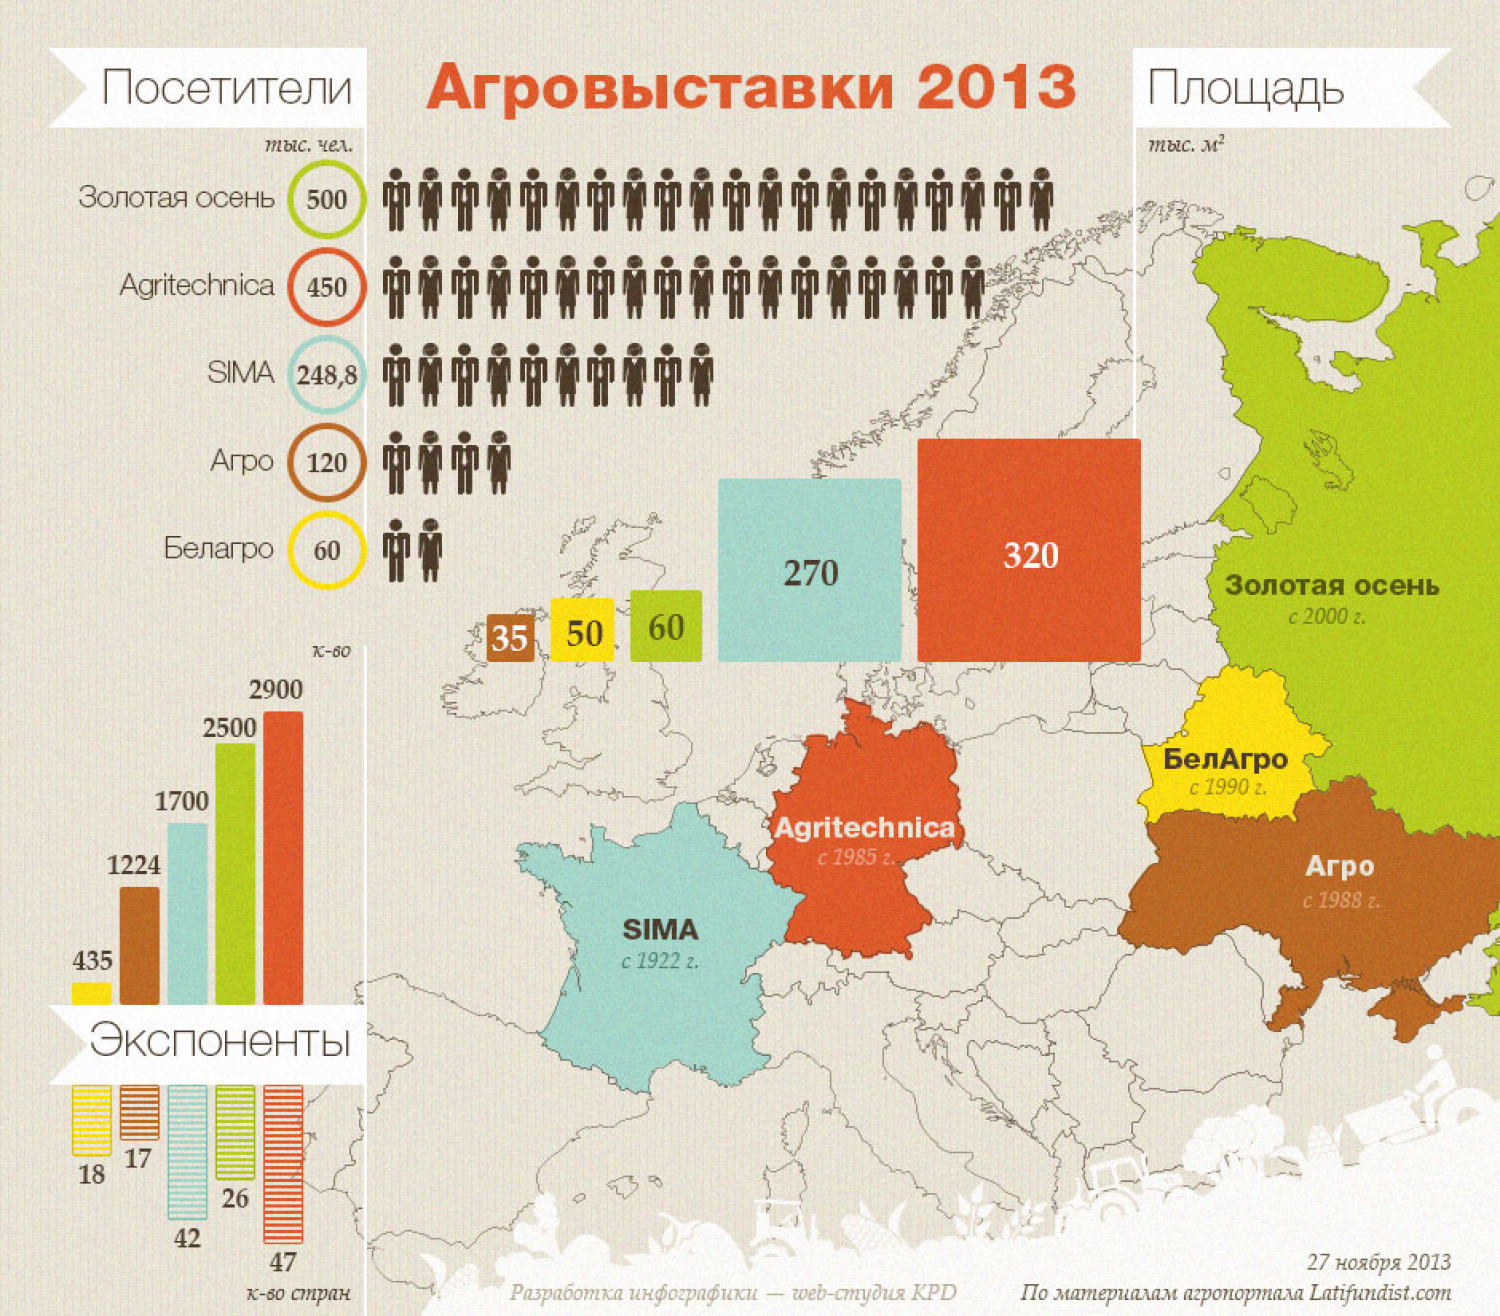 Agro Exhibitions 2013 Infographic